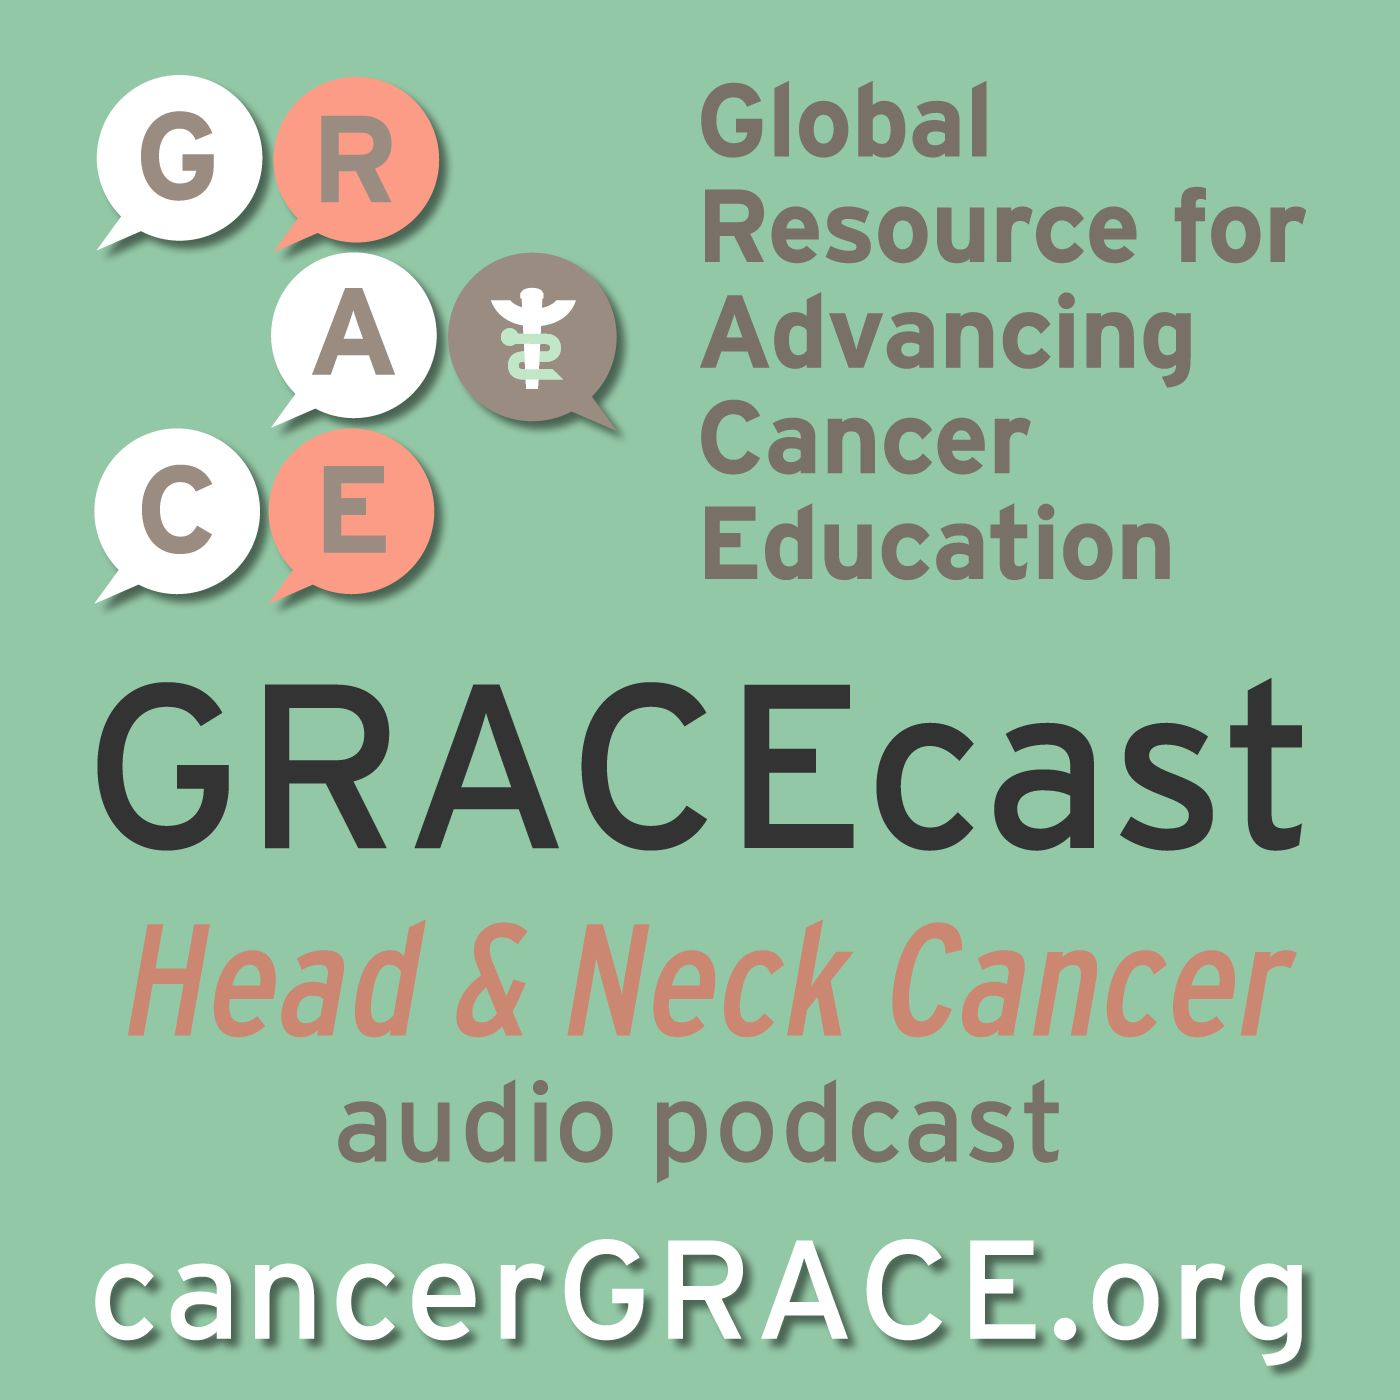 Late Stage Oropharynx Cancer, Treatment and Side Effects (audio)